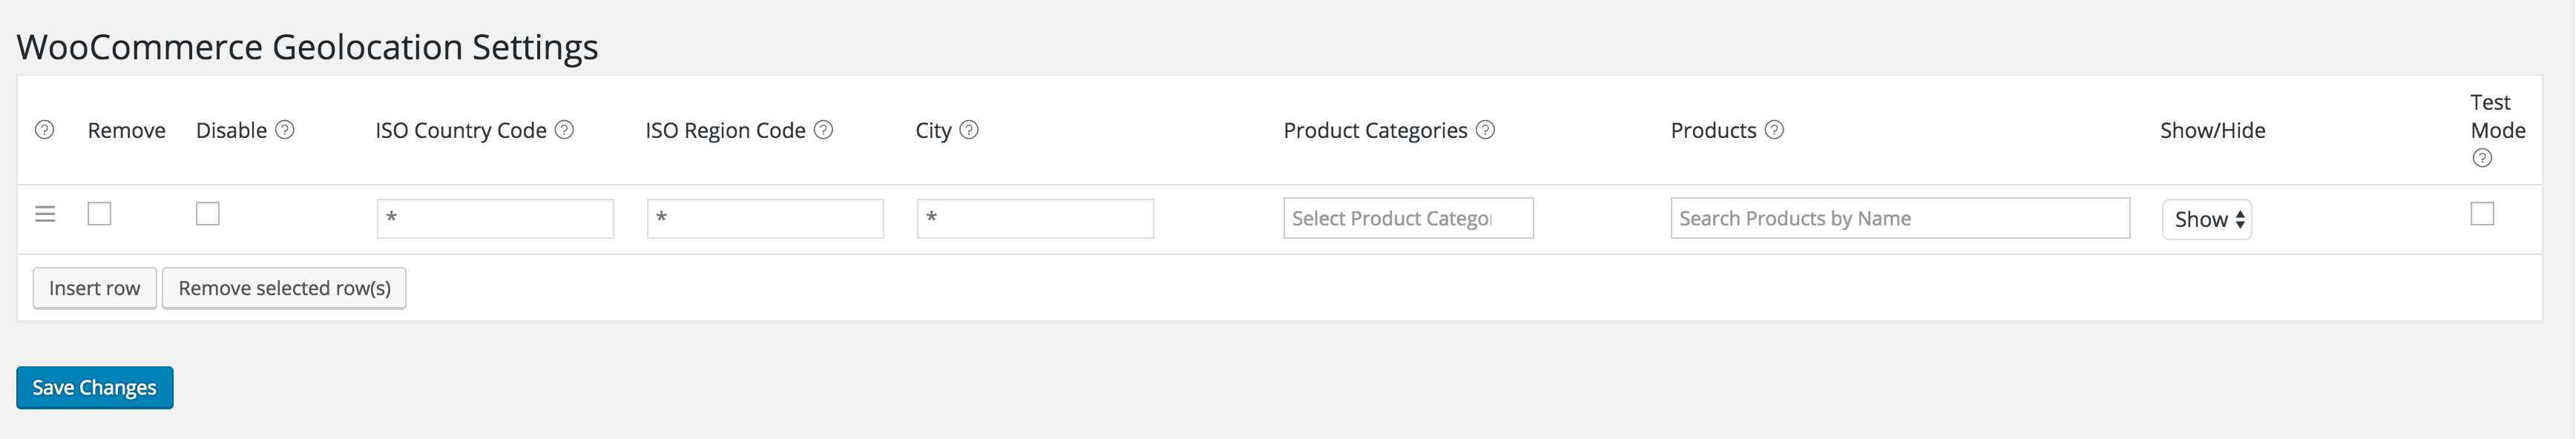 WooCommerce Geolocation Based Products Plugin WordPress, Download, Install